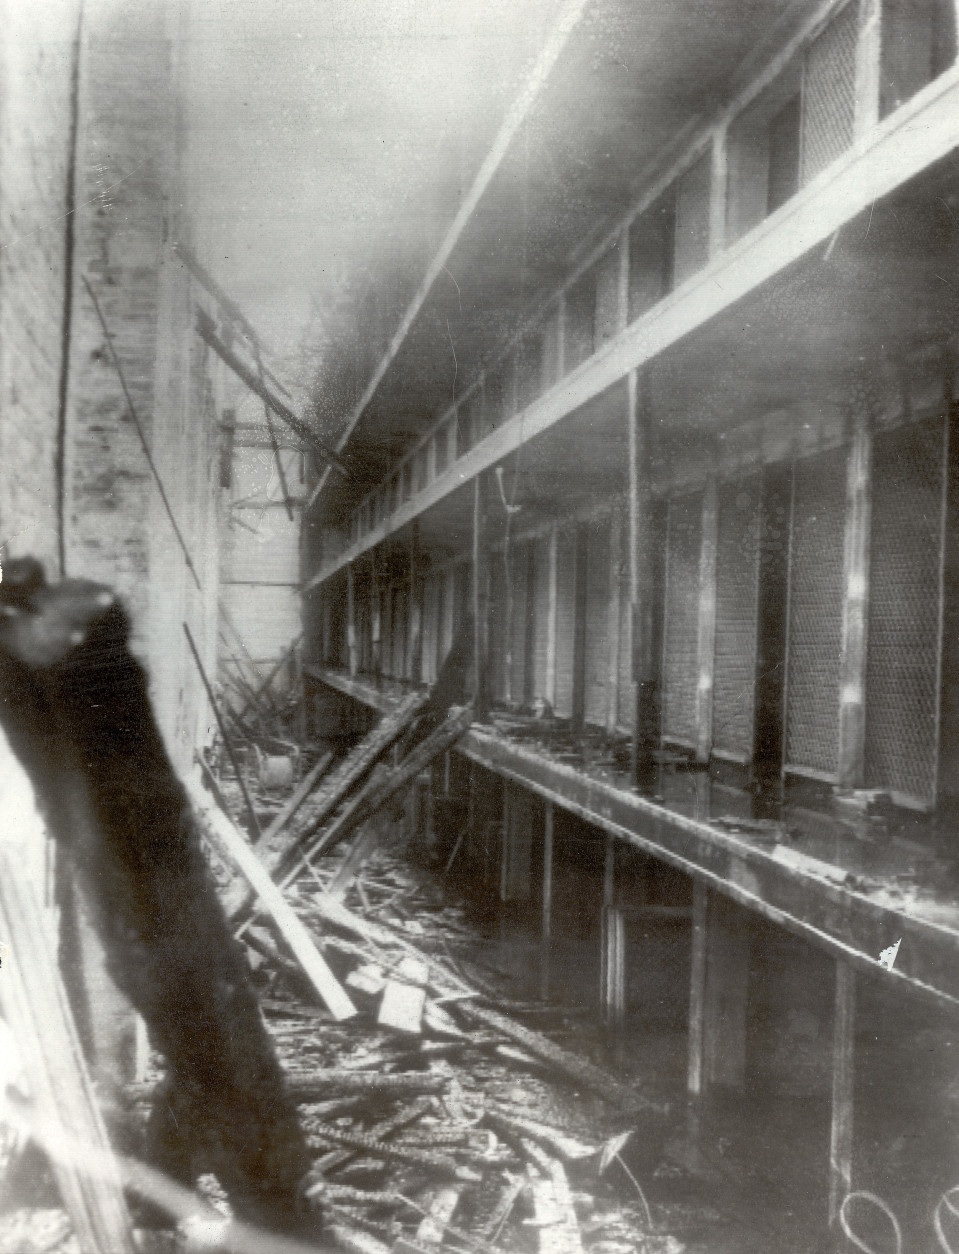 The charred ruins of the cell block in the Ohio State Penitentiary  in Columbus, Ohio are shown on April 22, 1930. Over 300 inmates were killed in the fire. (AP Photo)